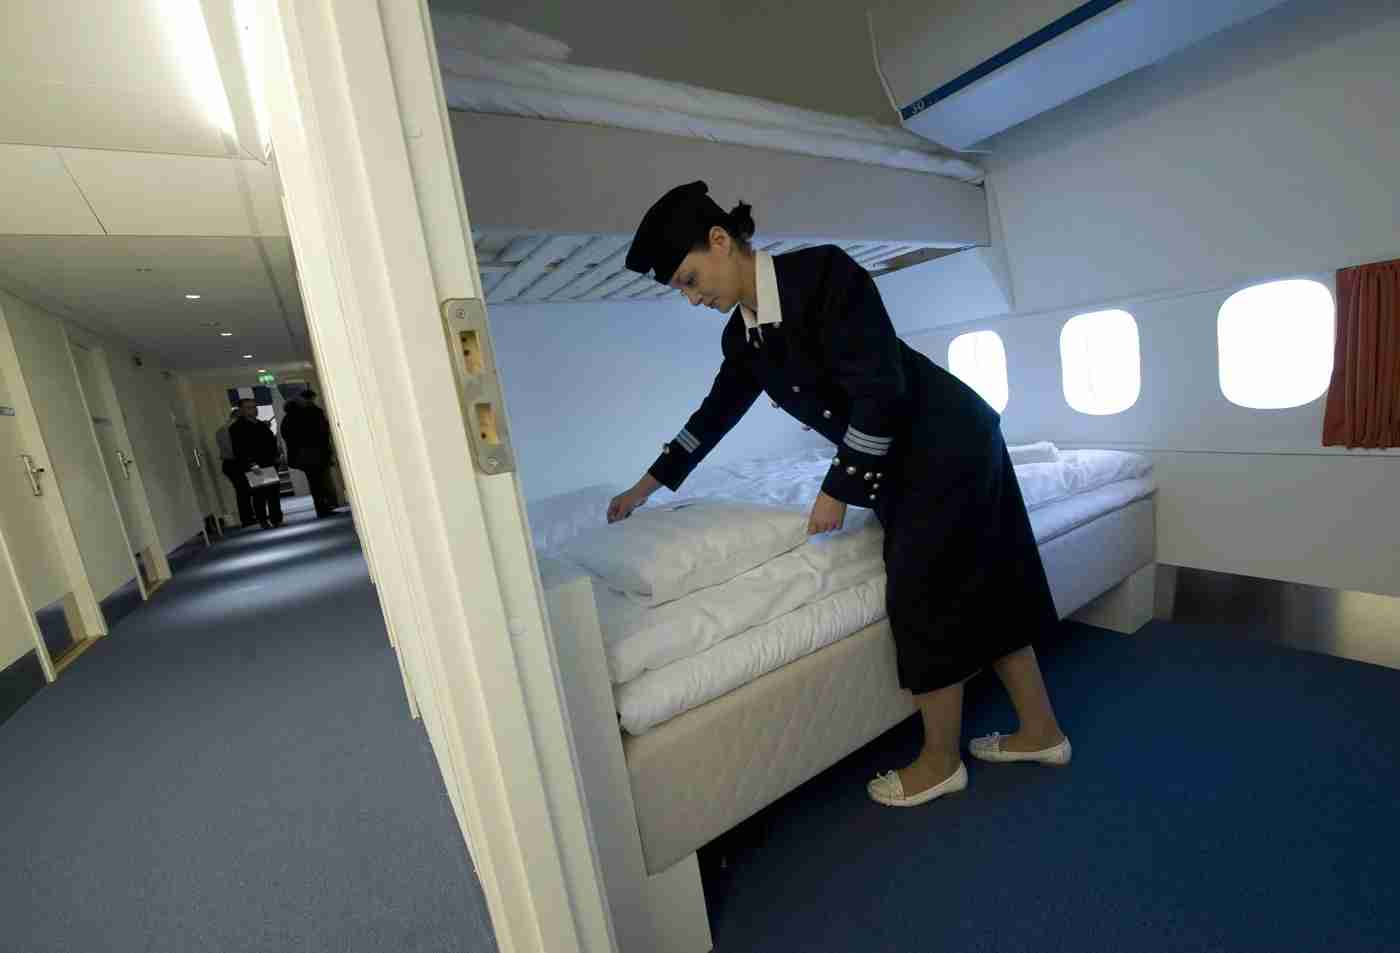 Local Manager Gisela Olsson makes a bed in one of the standard rooms of the Jumbo Hostel, reportedly the worlds first hostel in an airplane, at Arlanda airport in Stockholm on January 14, 2009. There are 74 beds in the retired Boeing 747-200 divided into dormitories and rooms with three beds, double beds, and a wedding suite in the cockpit. AFP Photo / Fredrik Sandberg / SCANPIX ** SWEDEN OUT ** (Photo credit should read FREDRIK SANDBERG/AFP/Getty Images)